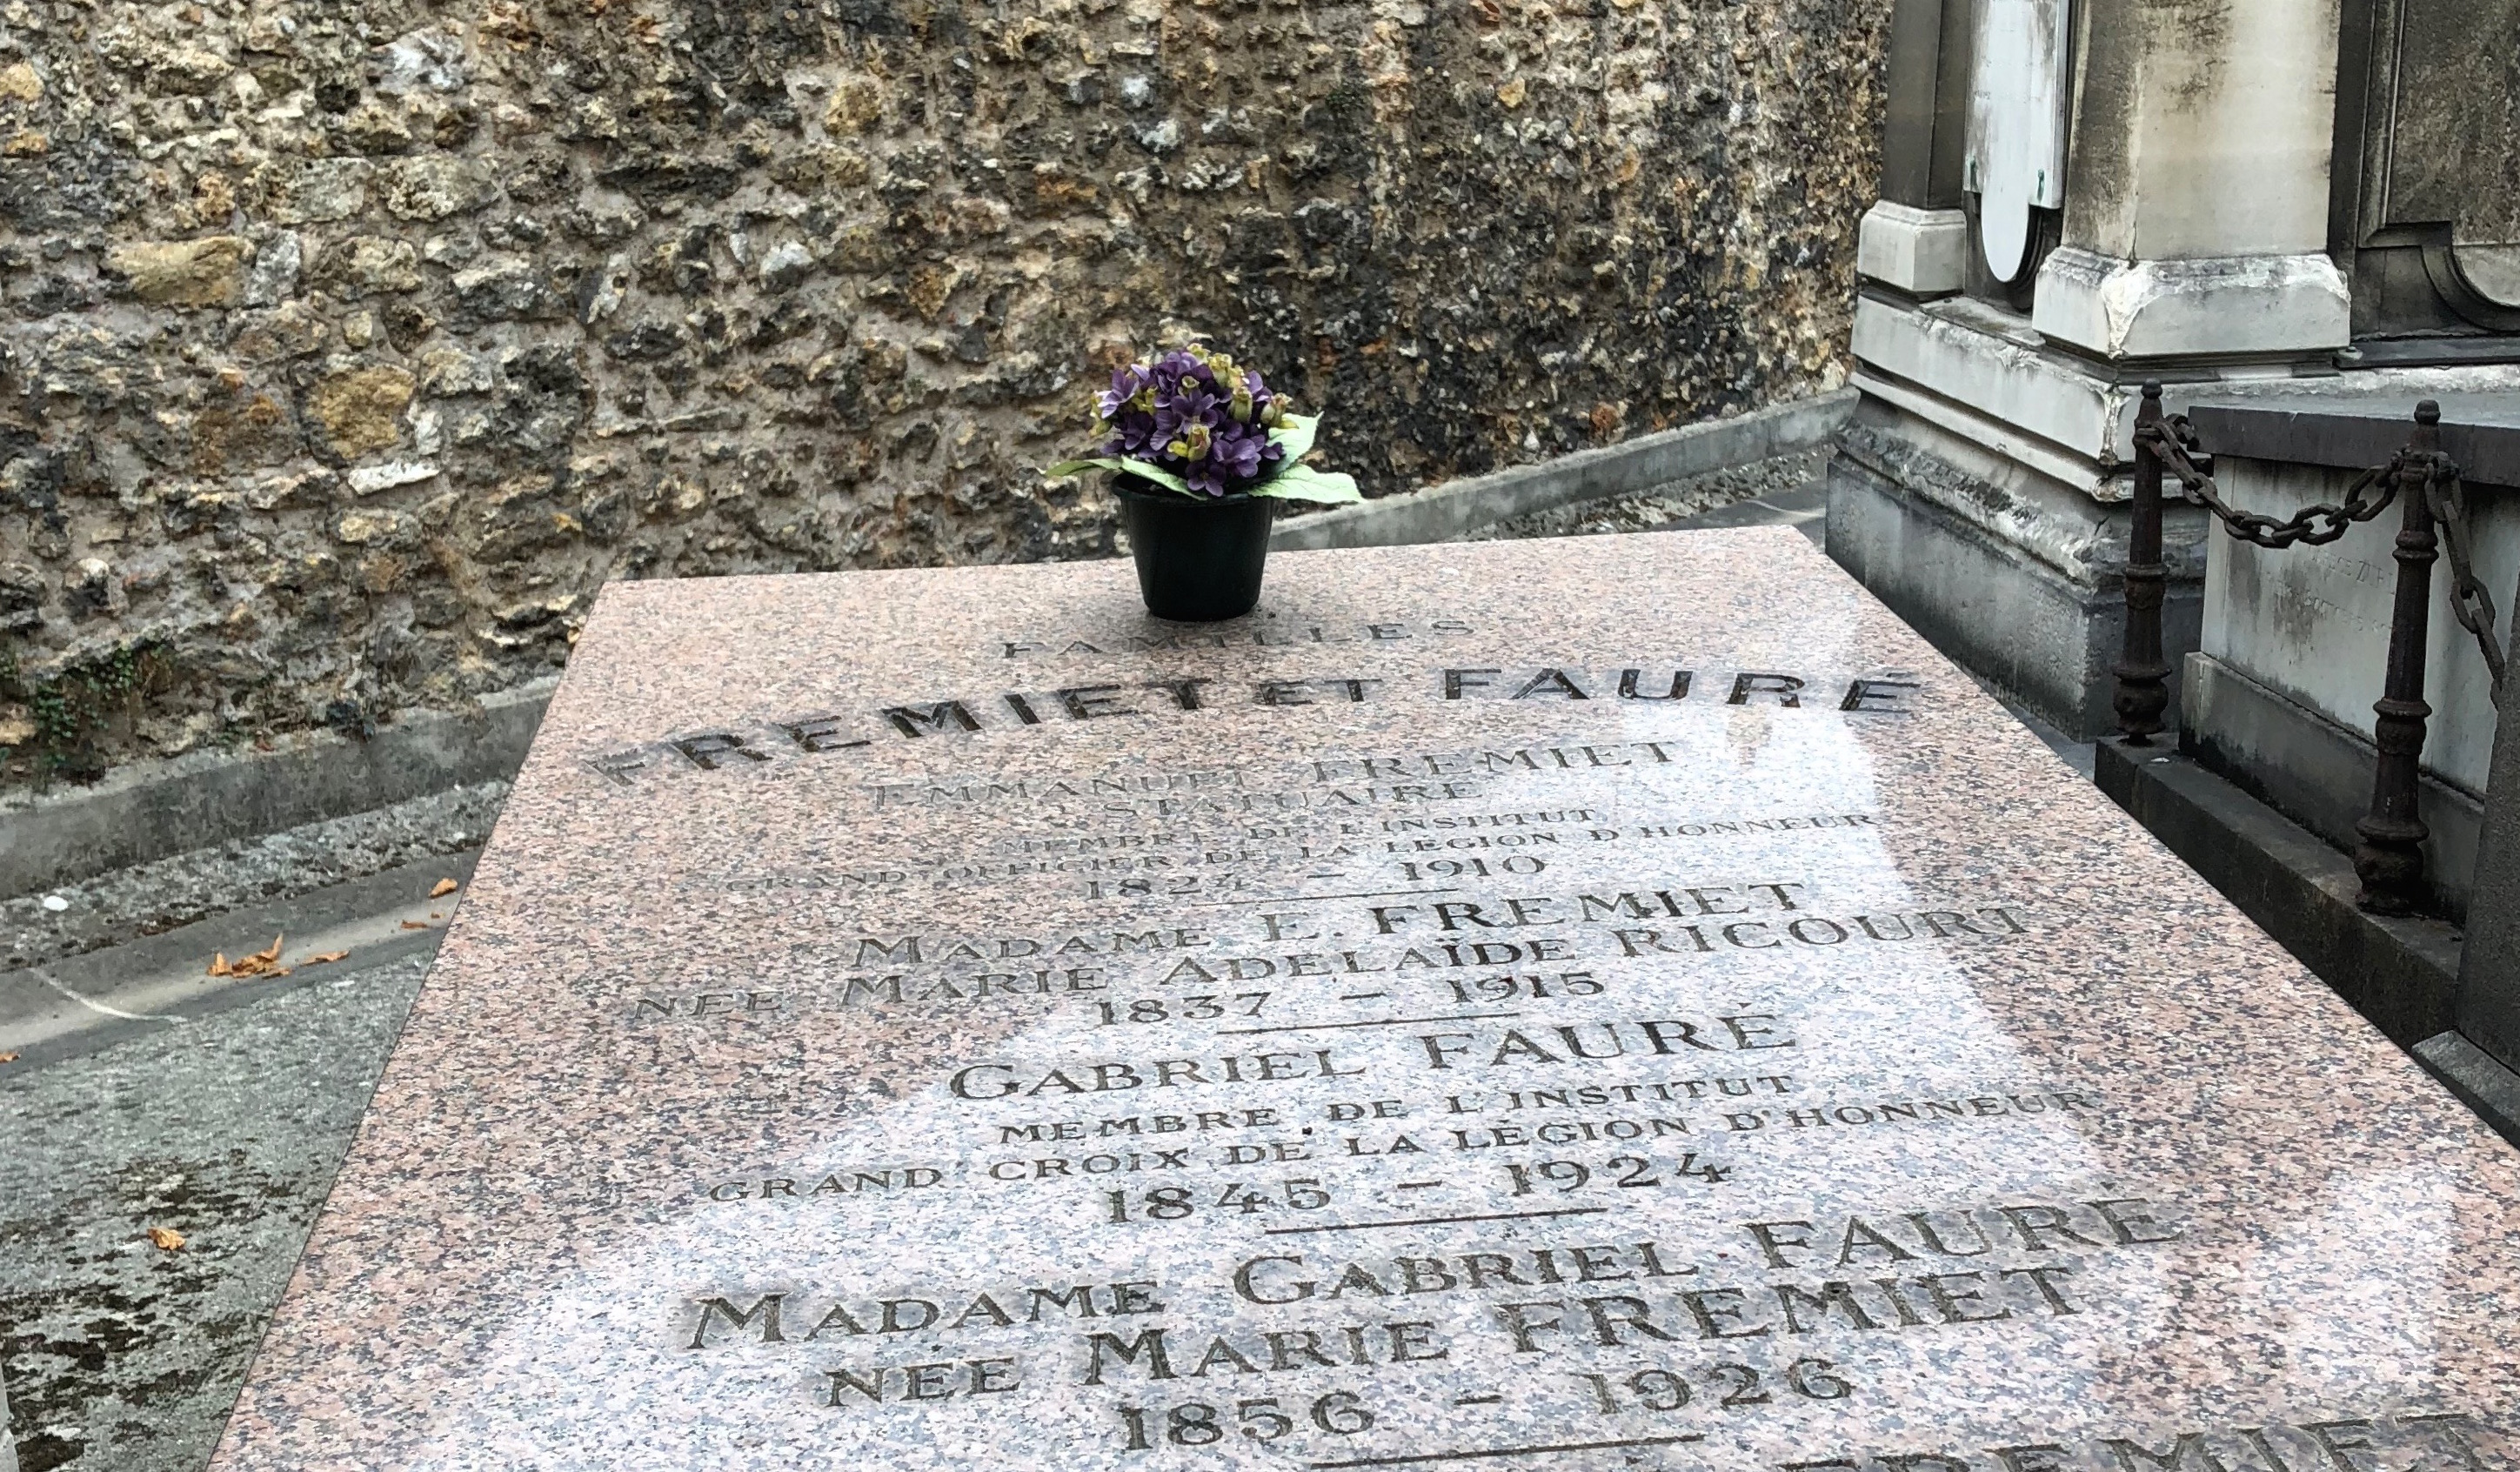 Alex Ross: The Rest Is Noise: At the graves of Debussy and Fauré